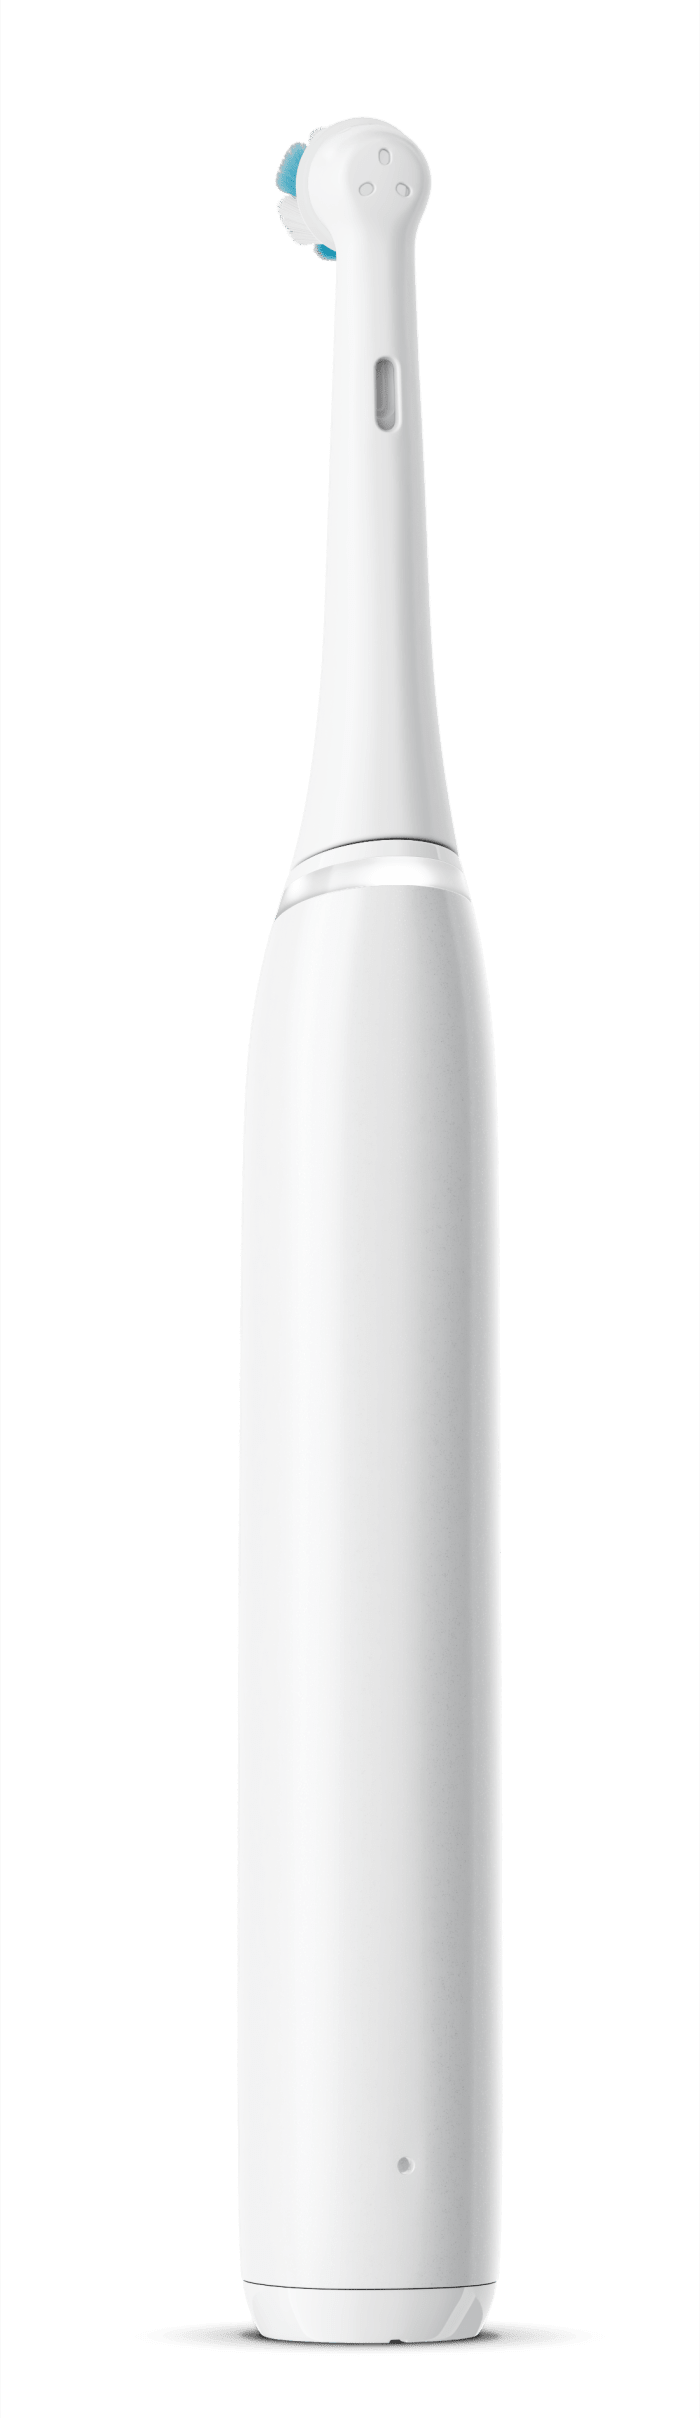 Oral-B iO Series 7 Electric Toothbrush with Display Screen